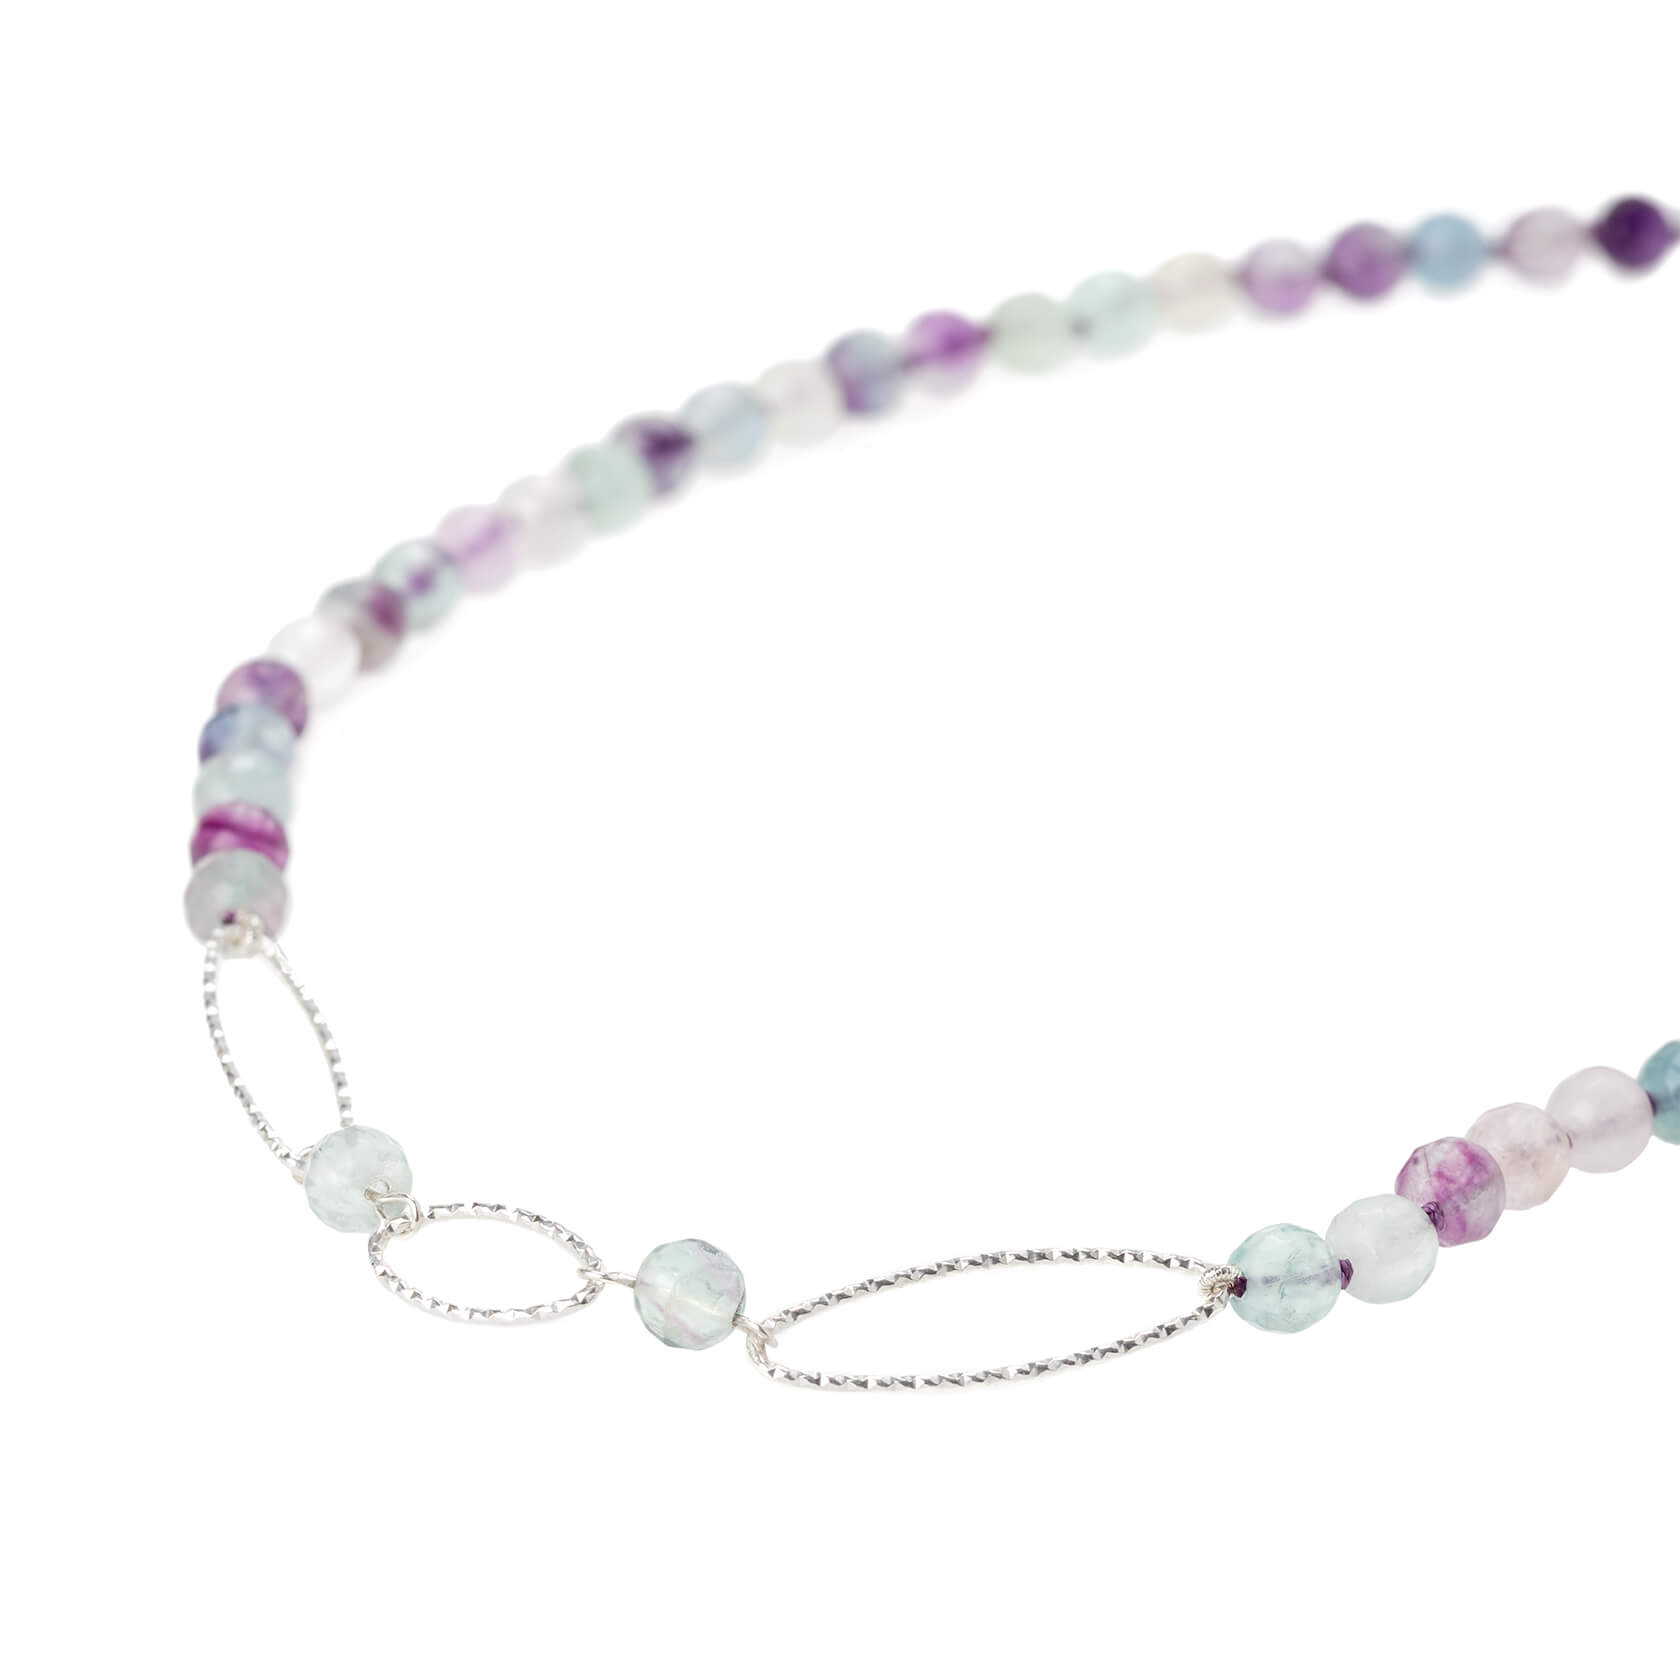 Fluorite necklace Marybola